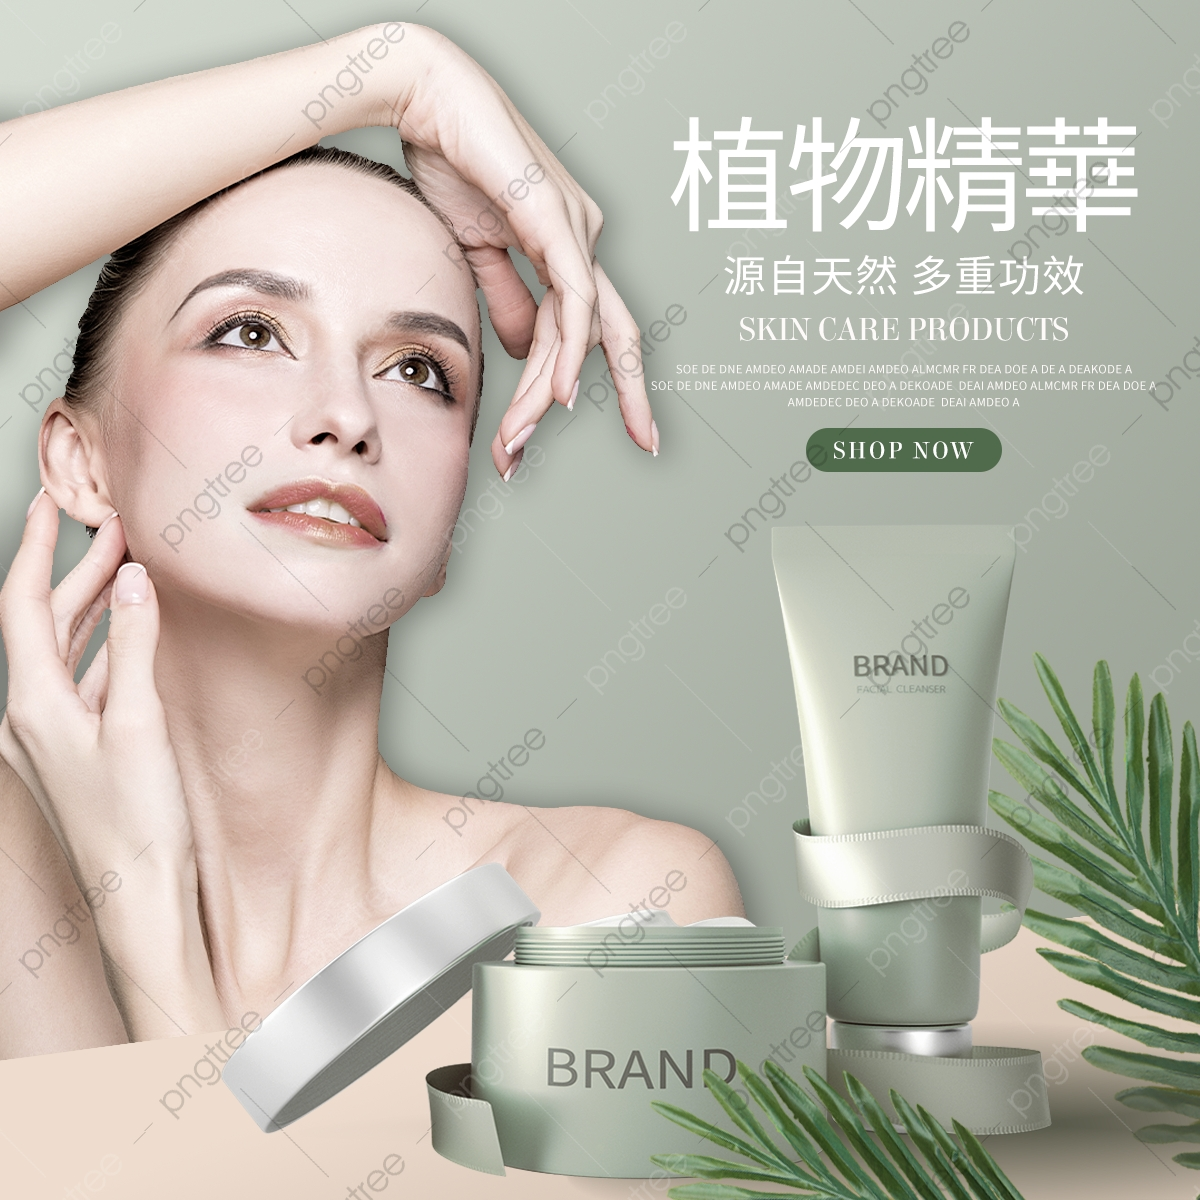 Green Plant Cosmetic Model Promotional Banner Template For Free Download On Pngtree